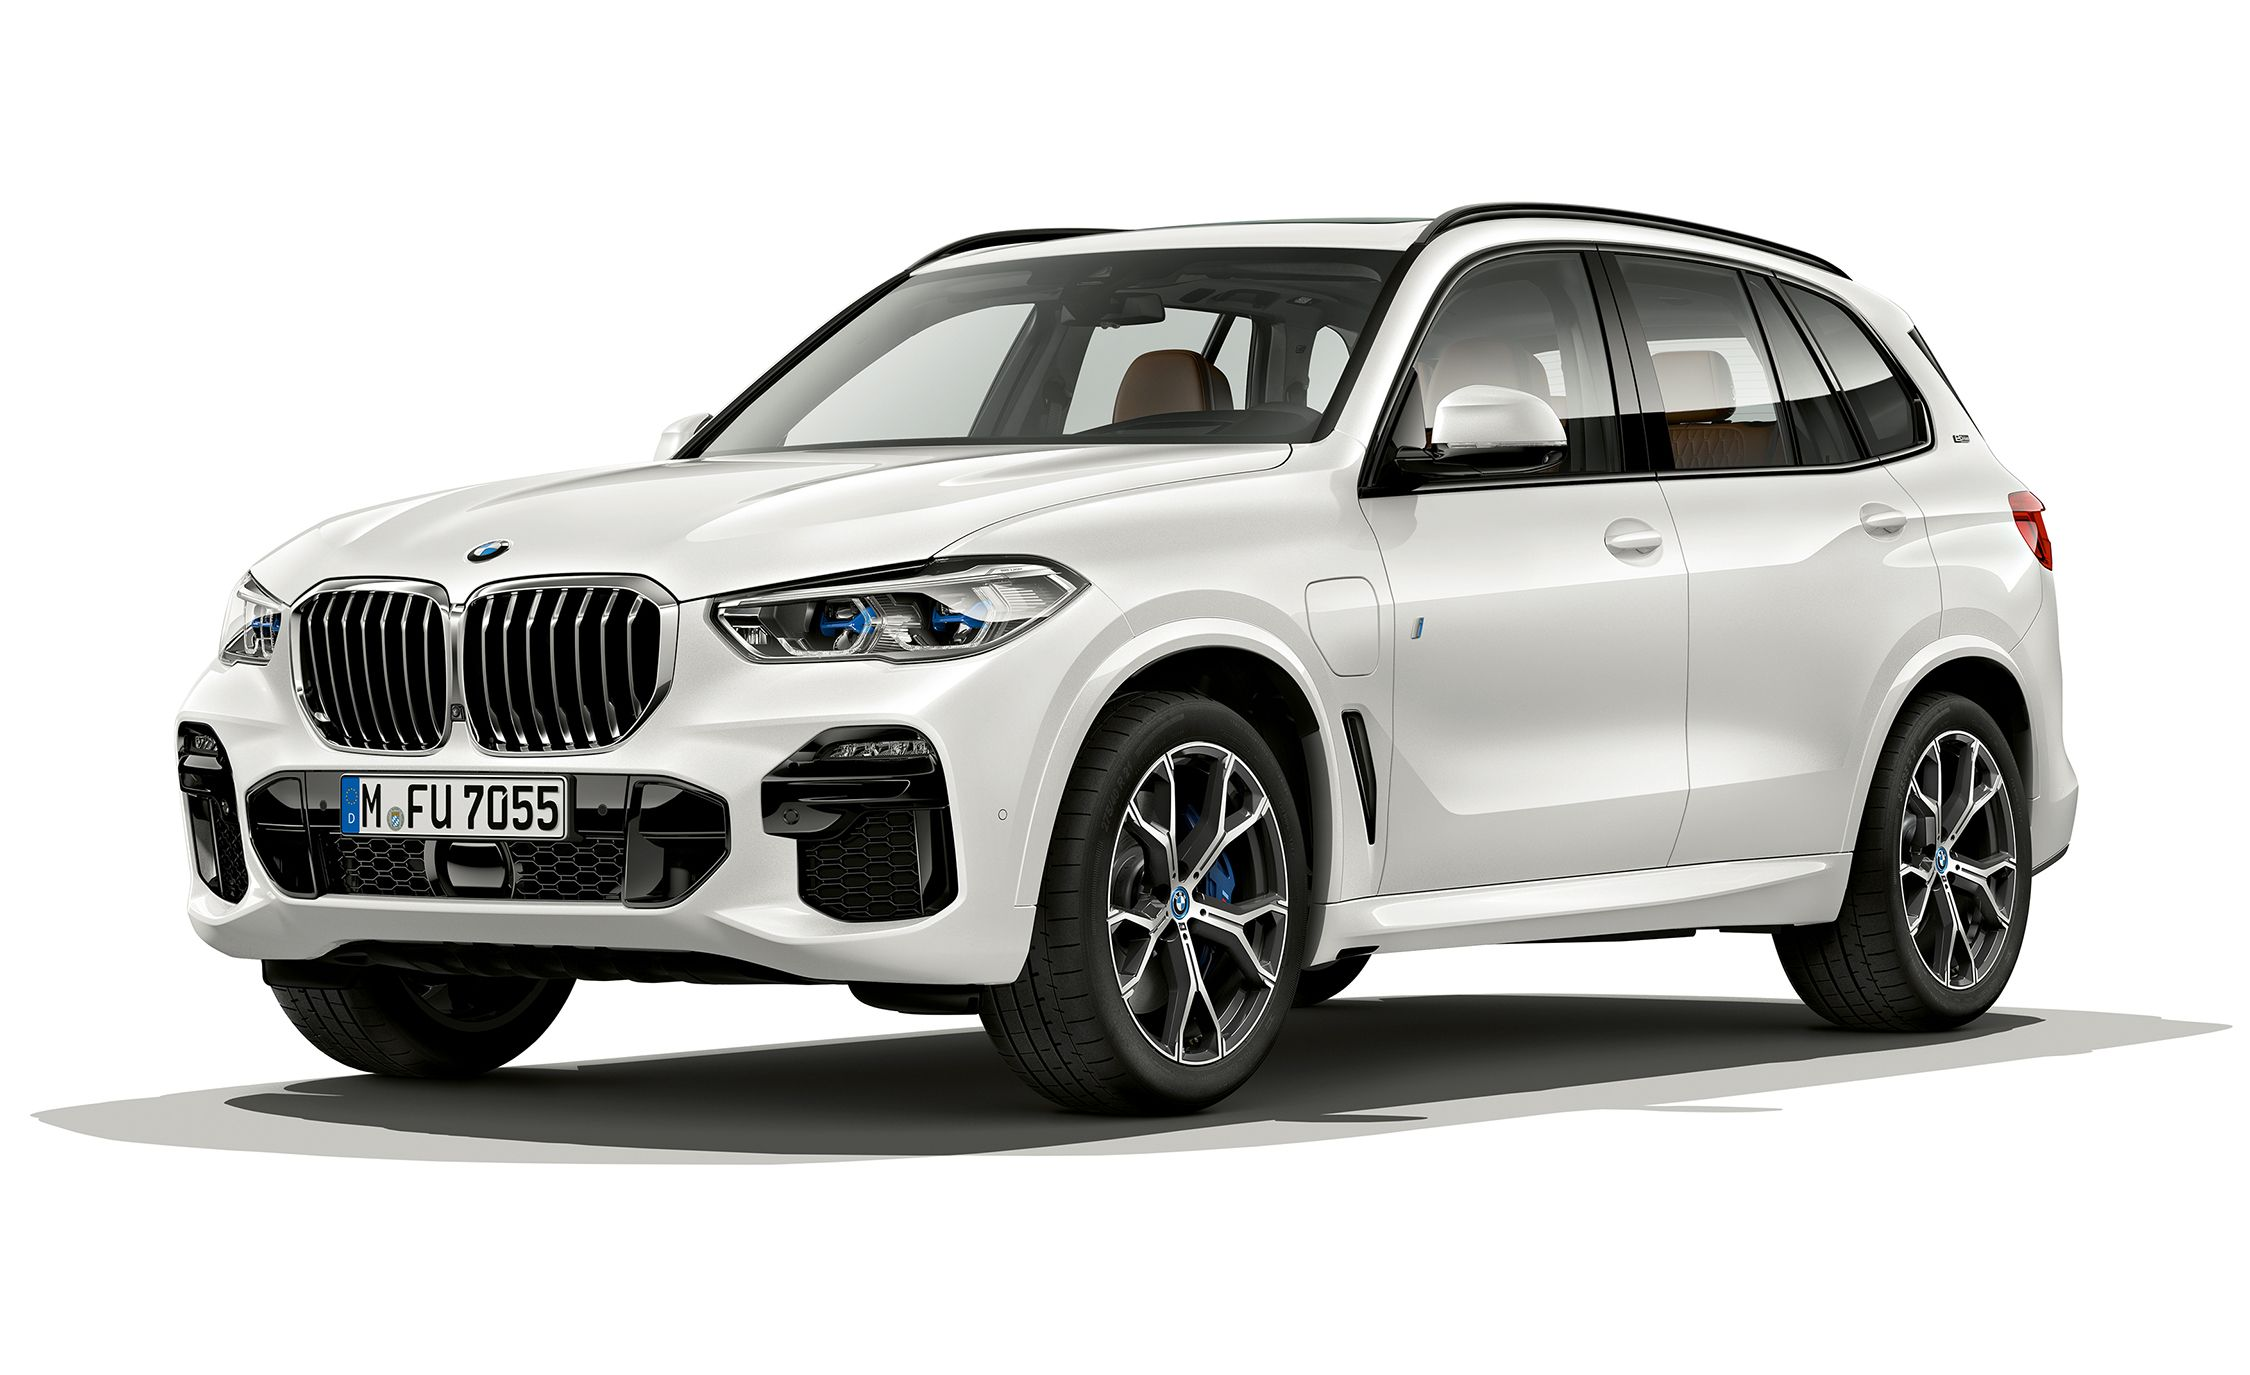 2021 Bmw X5 Reviews Bmw X5 Price Photos And Specs Car And Driver